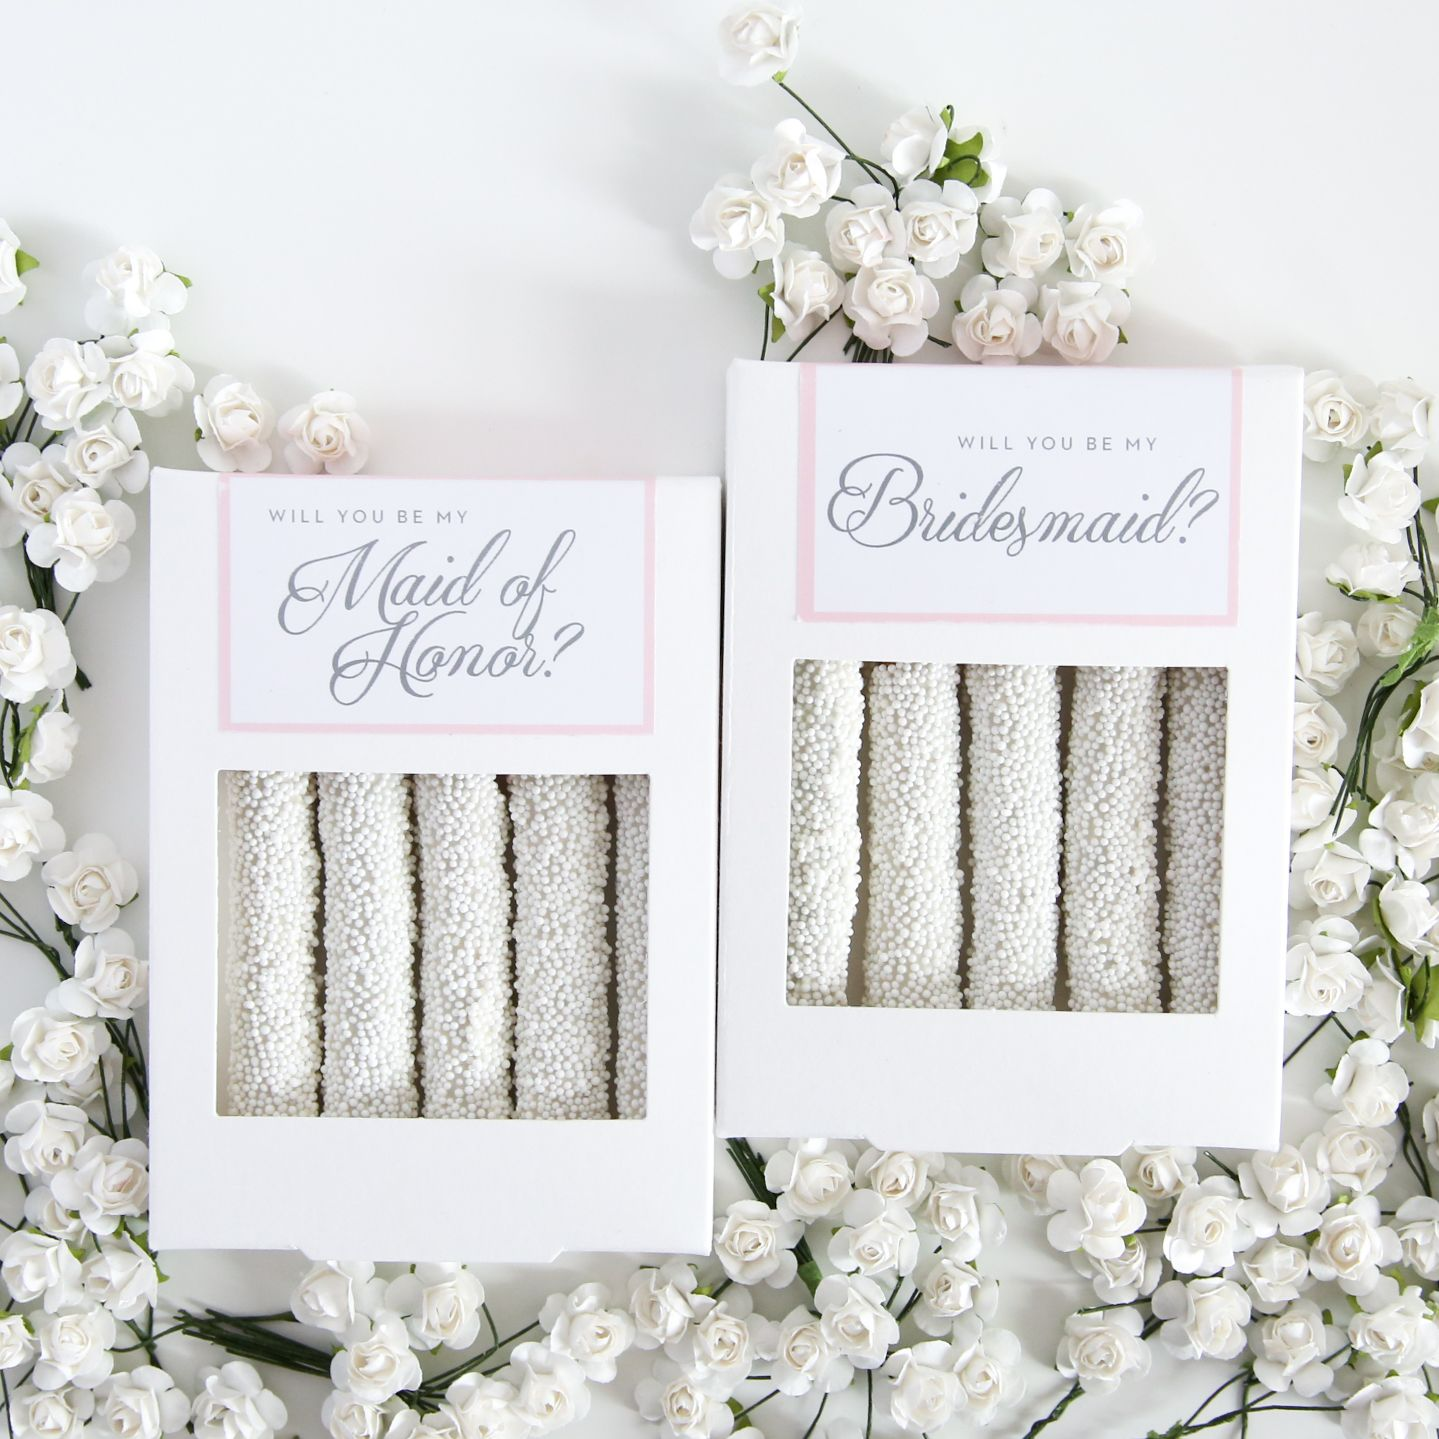 New from Fatty Sundays | Favors and Weddings